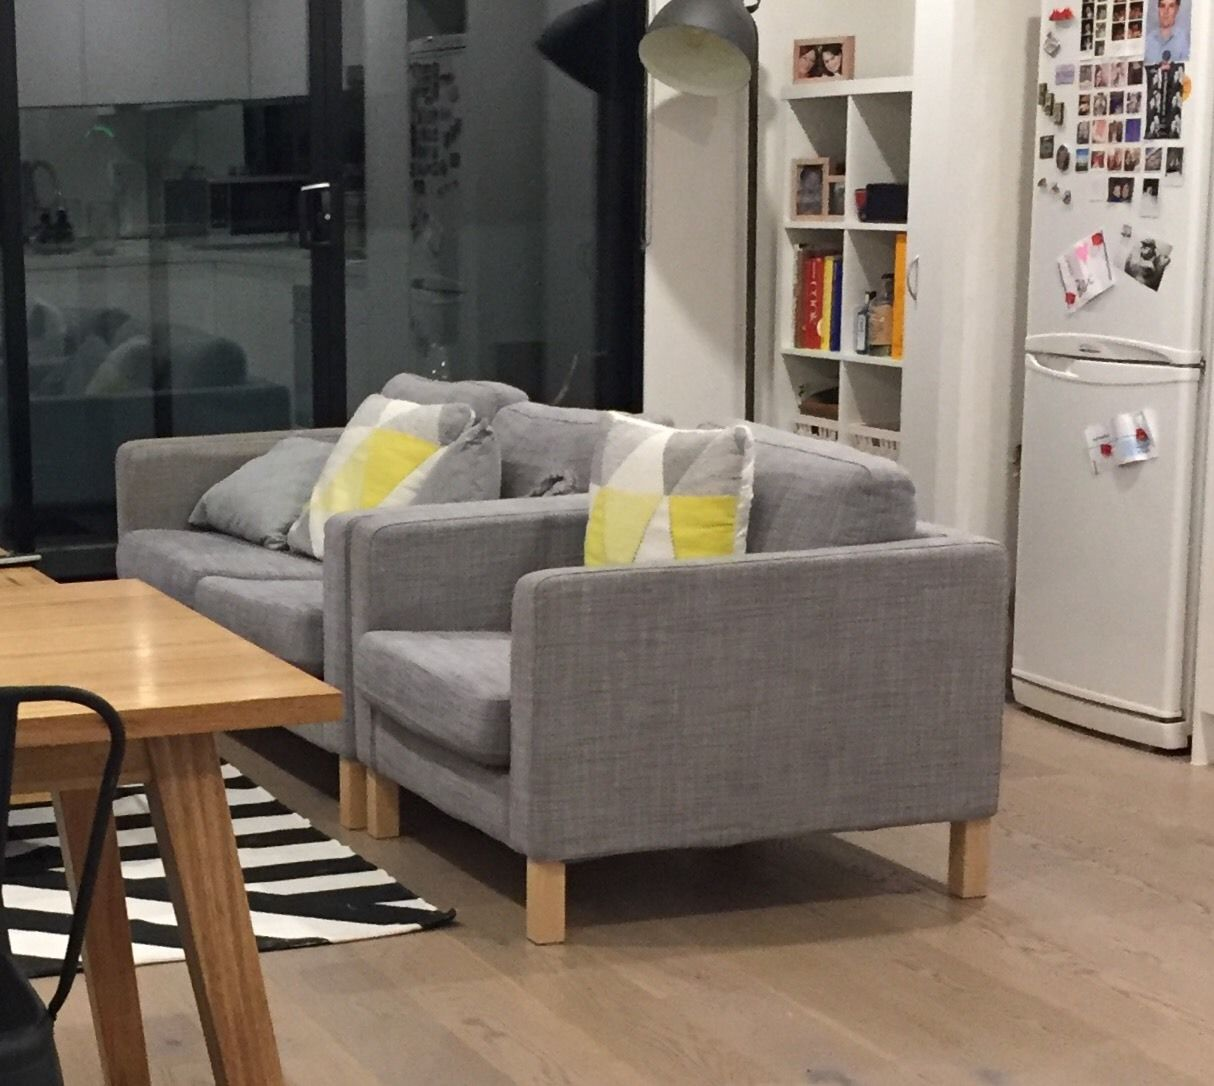 ikea-karlstad-armchair-2-seater-sofa-grey